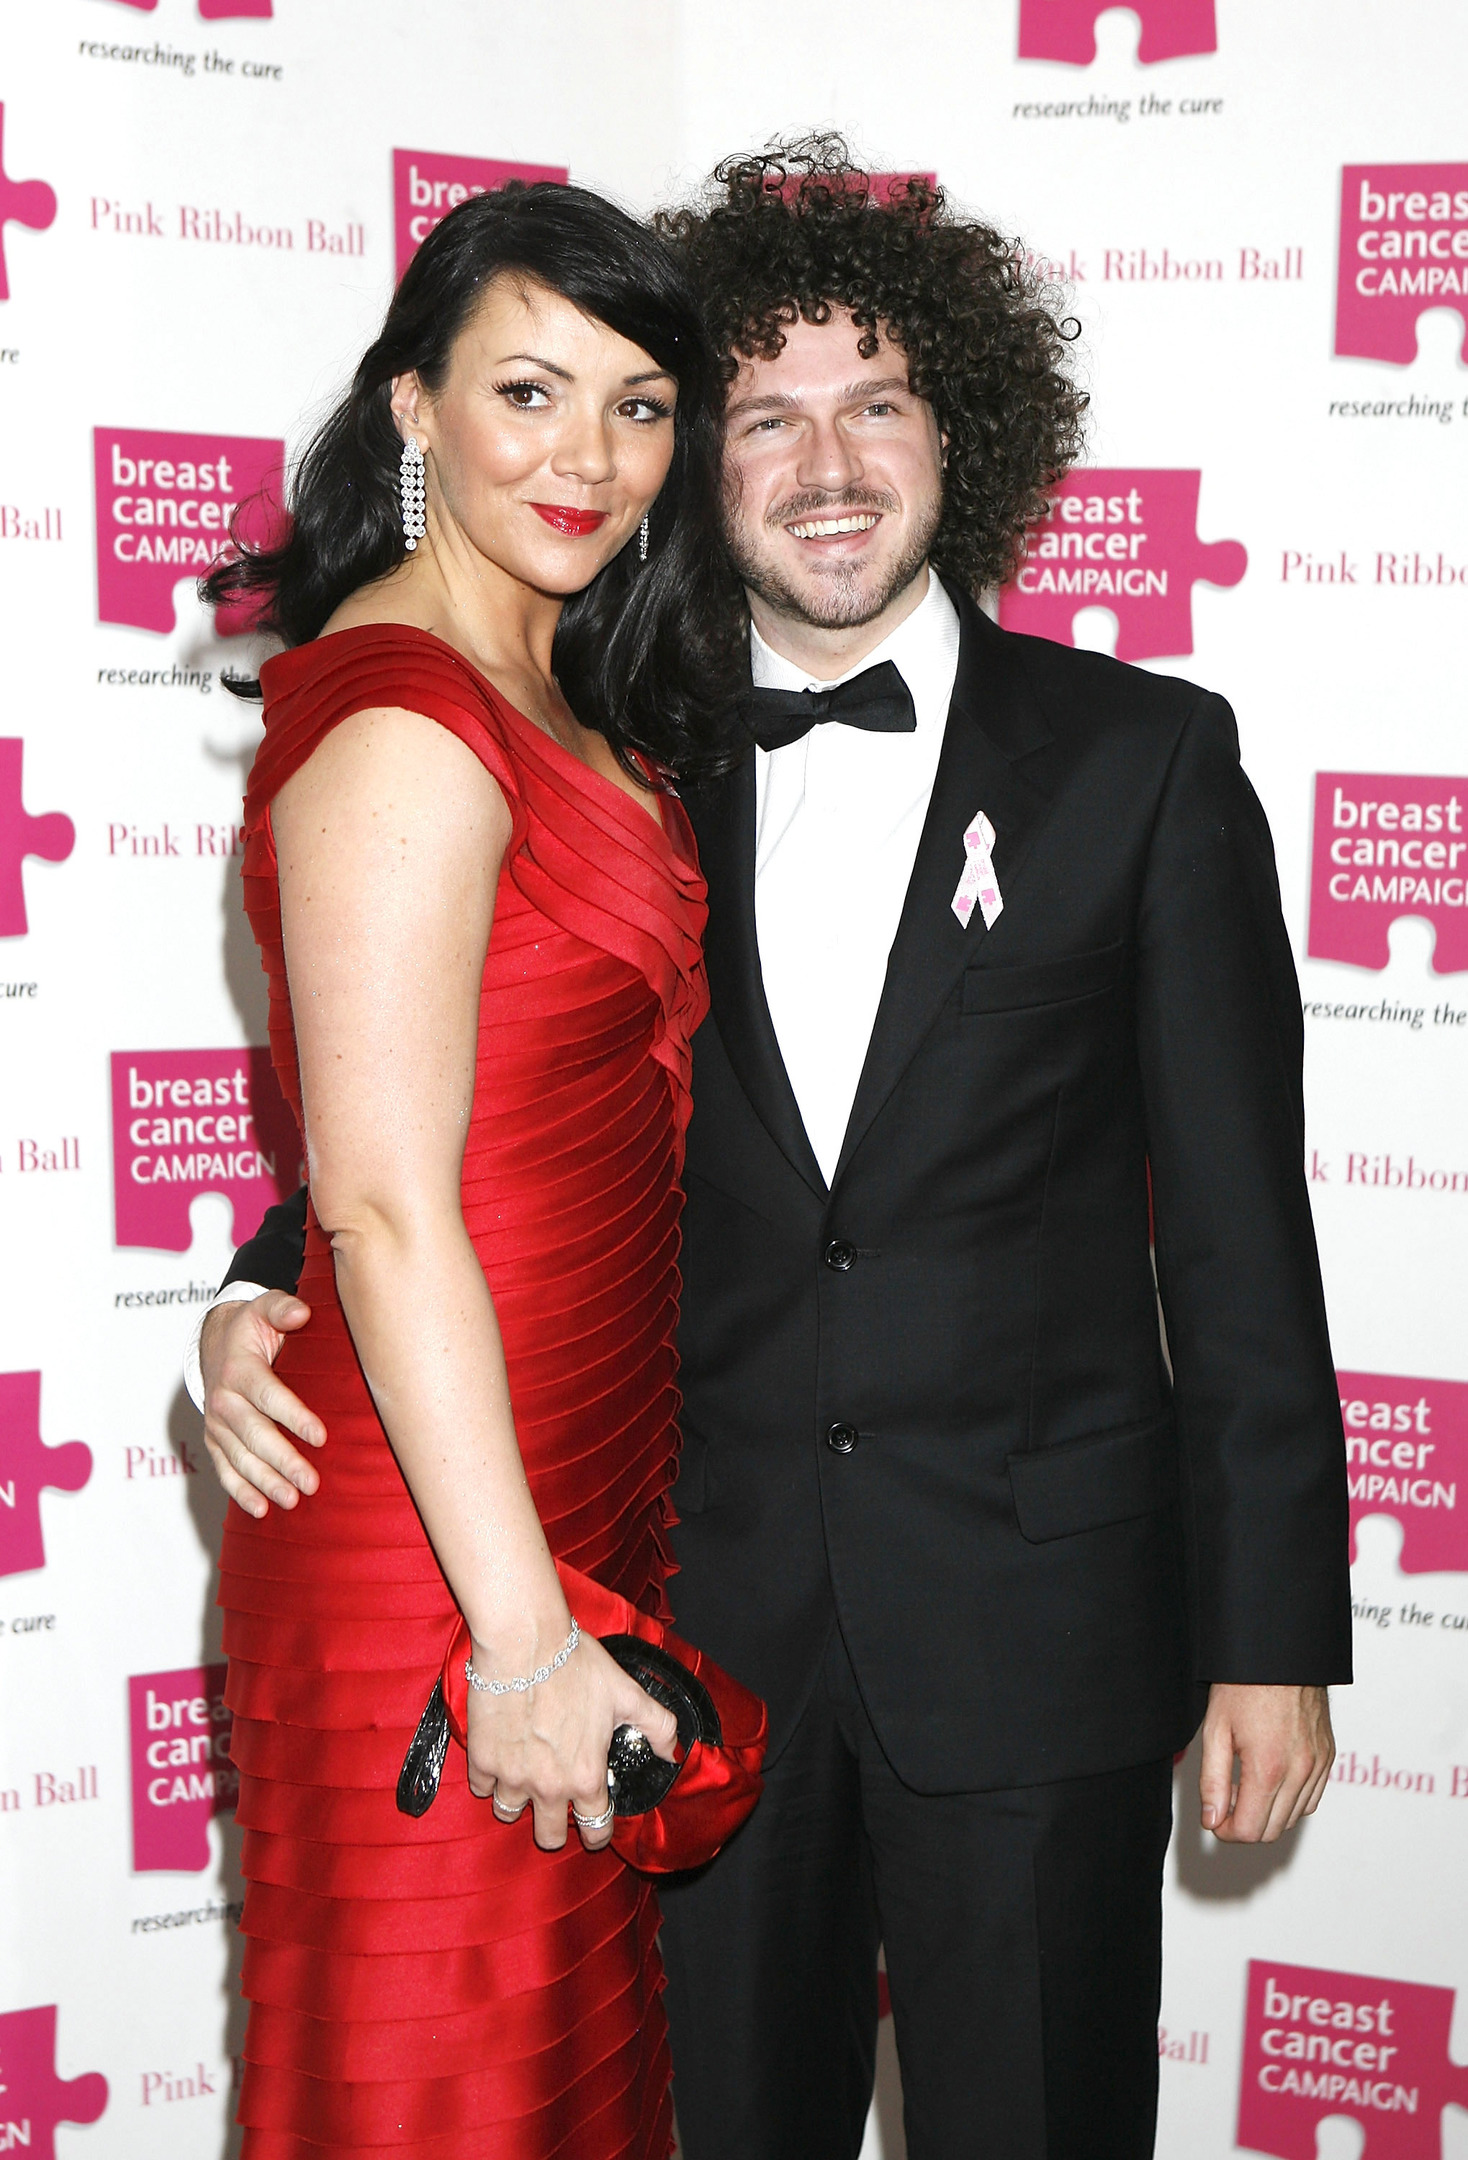 10/10/2009 PA File Photo of Pink Ribbon Ball patron Martine McCutcheon and partner Jack Mcmanus at the Pink Ribbon Ball at the Dorchester Hotel in central London. See PA Feature WELLBEING McCutcheon. Picture credit should read: Yui Mok/PA Photos. WARNING: This picture must only be used to accompany PA Feature WELLBEING McCutcheon.